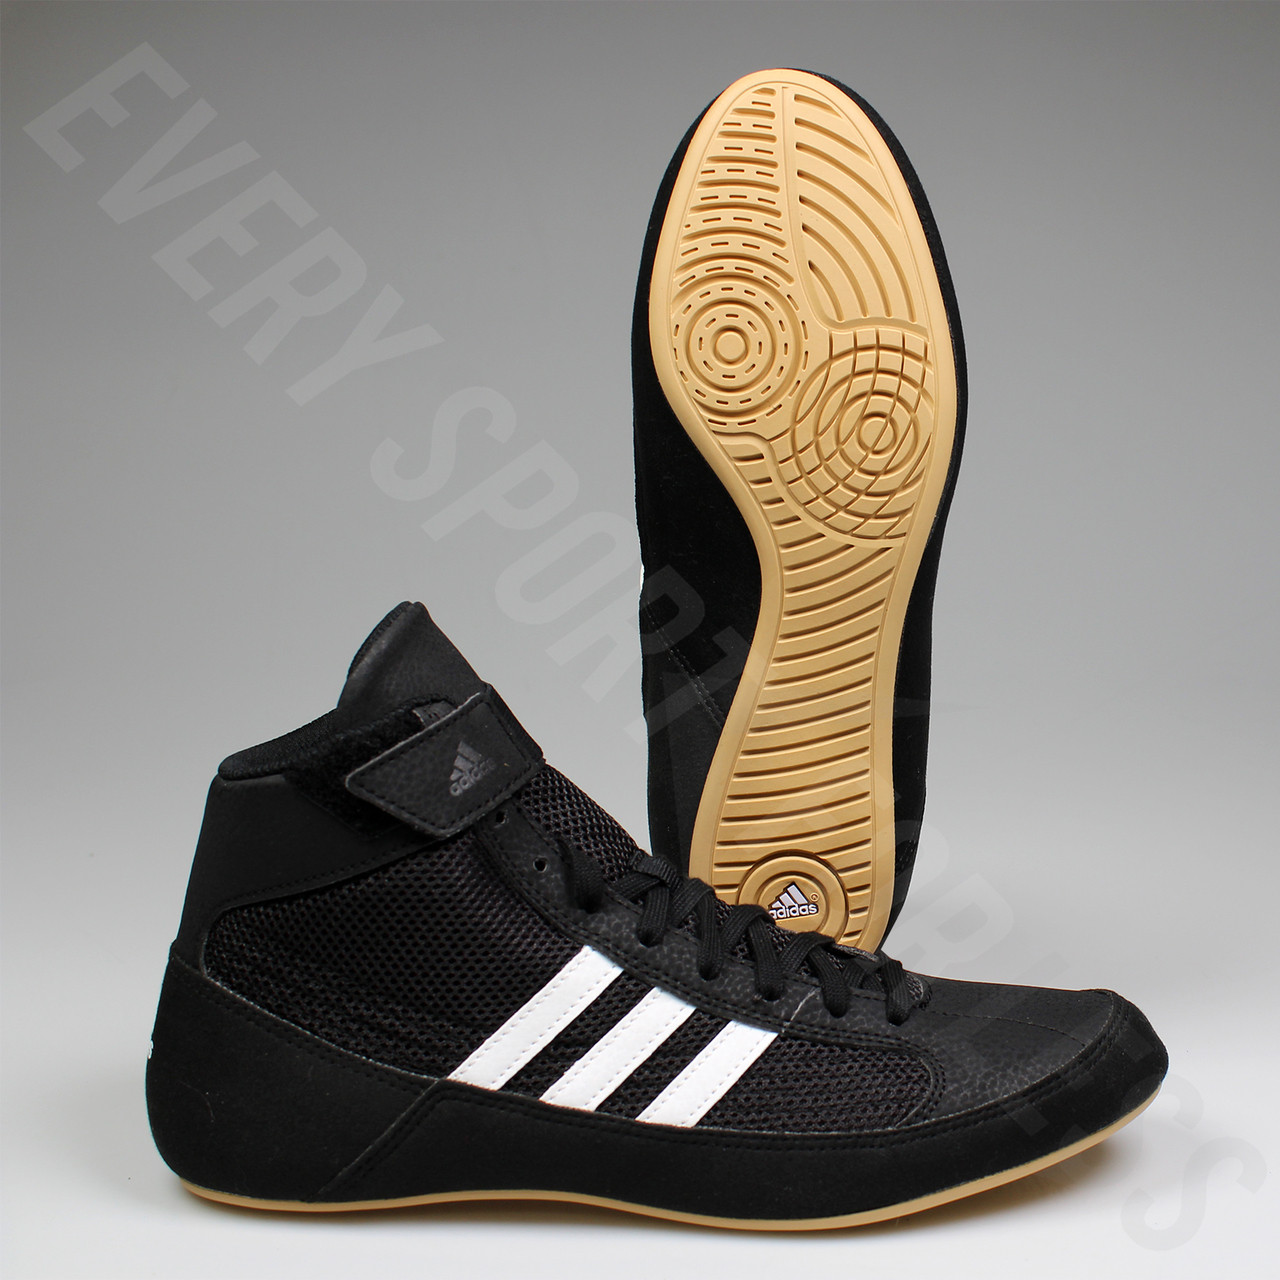 f0a989cfd2169 Adidas HVC 2 Youth Wrestling Shoes AQ3327 - Black, White